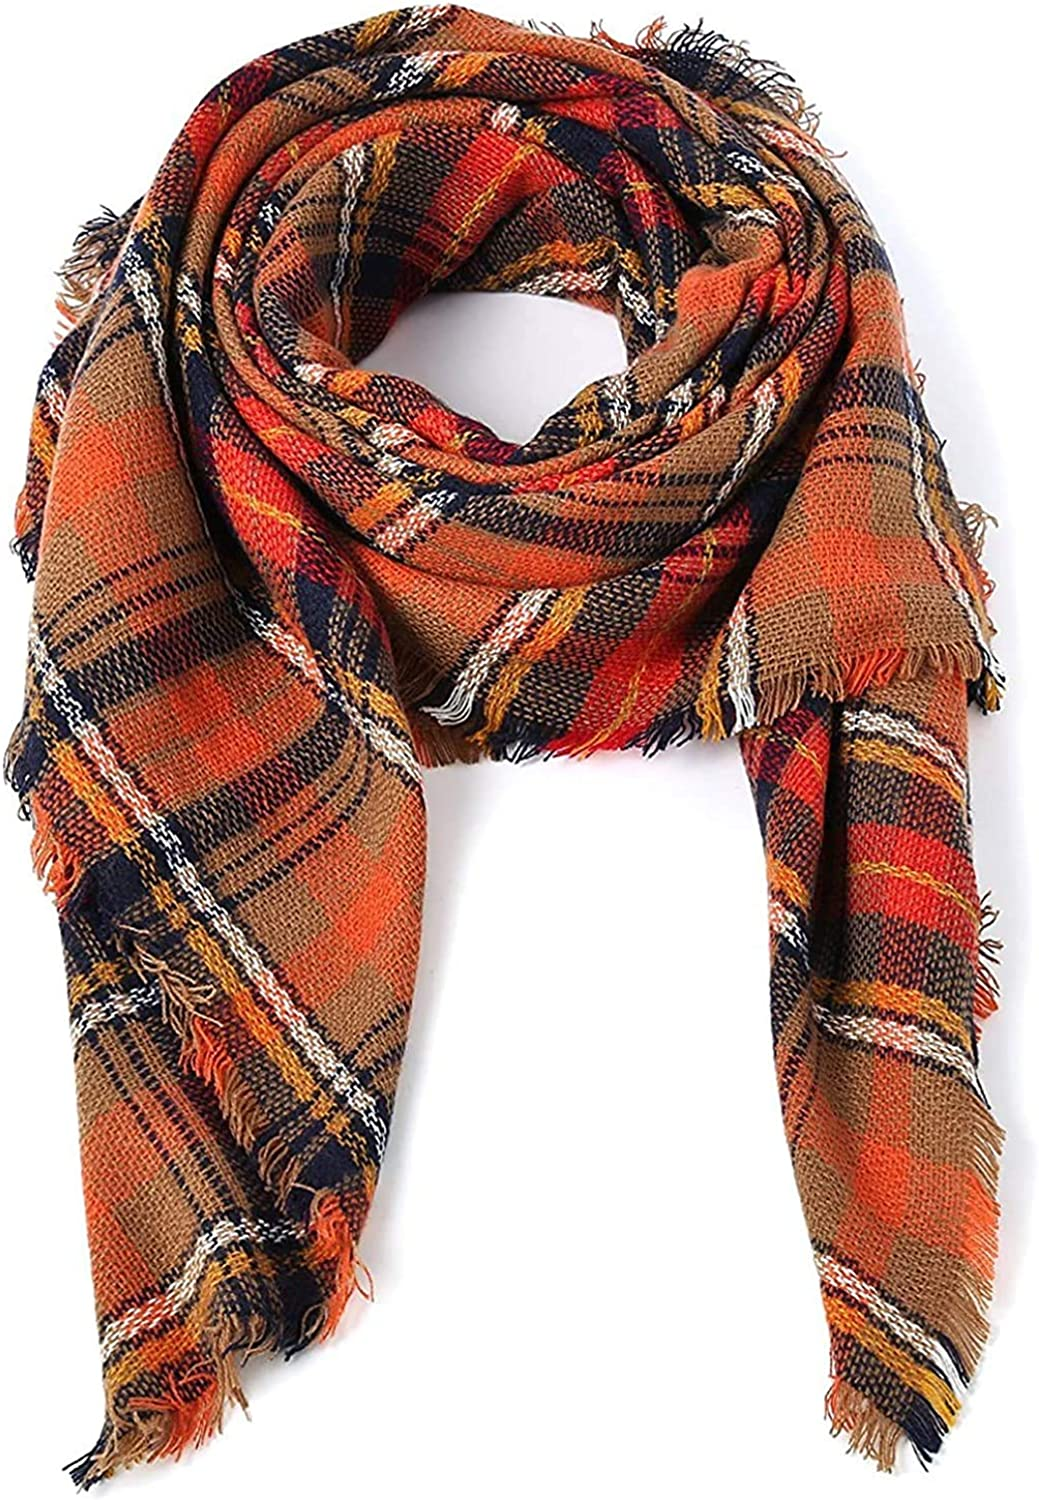 Neck Warmer Women's Scarf Women's Scarf MKLP Tassel Scarf Winter Ladies Scarf Large Warm Shawl Plaid Scarf Large Shawl Keep Warm and Prevent Cold For Women